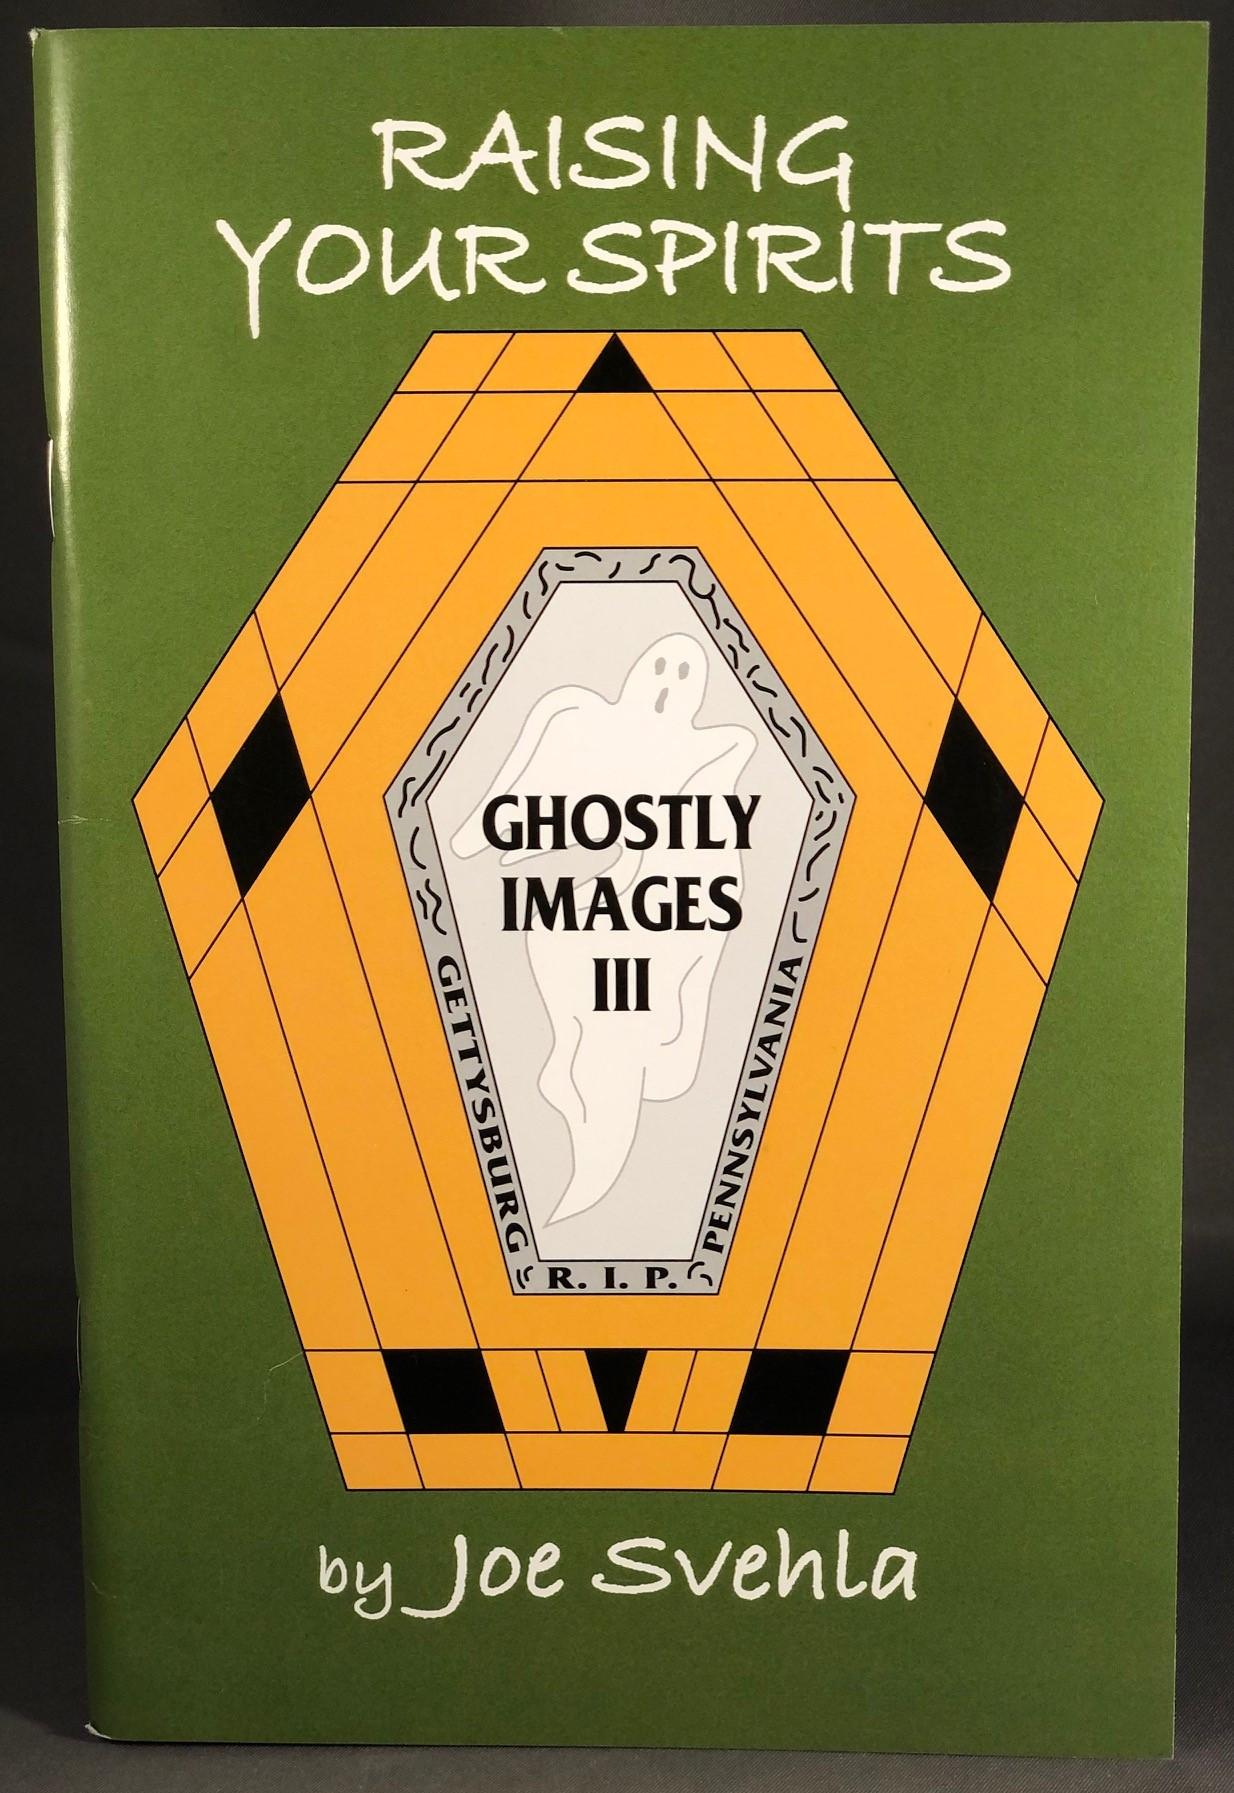 raising your spirits - ghostly images iii by joe svehla book cover